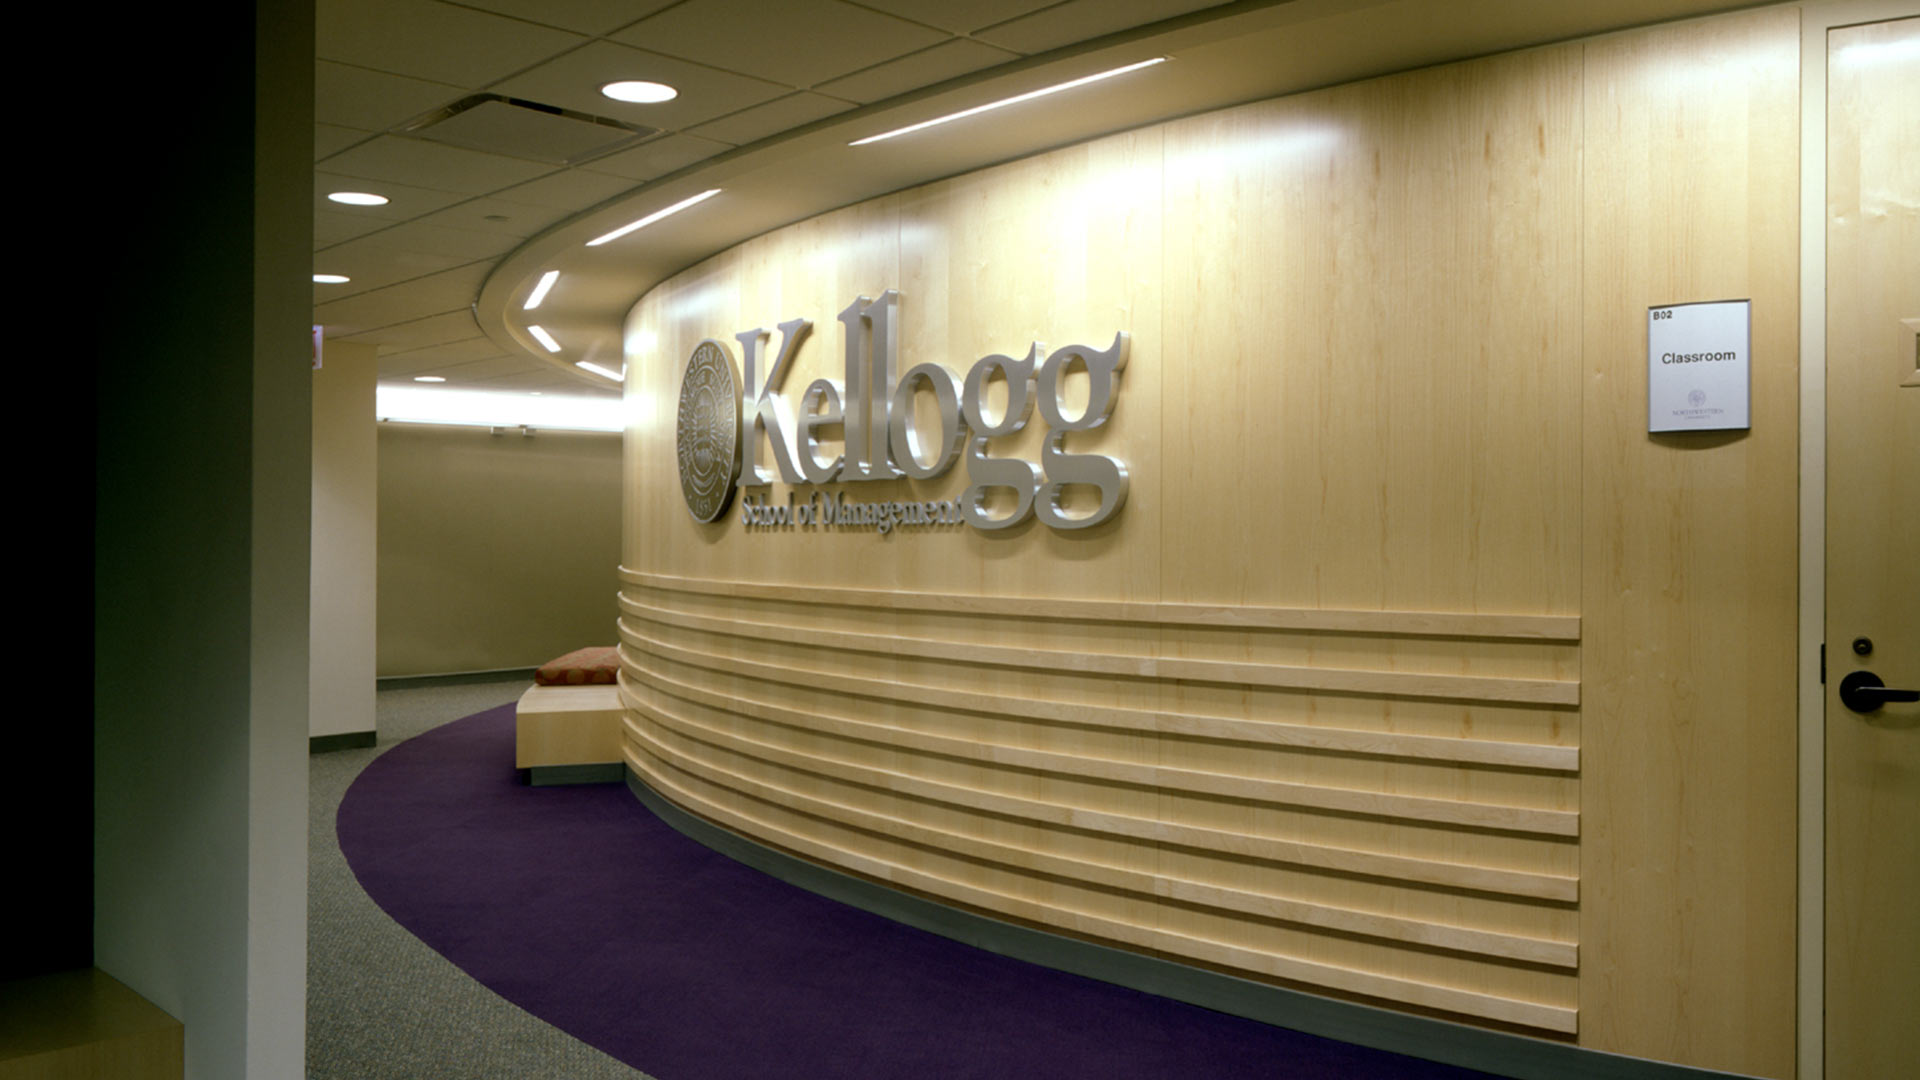 Northwestern University Kellogg Graduate School of Management